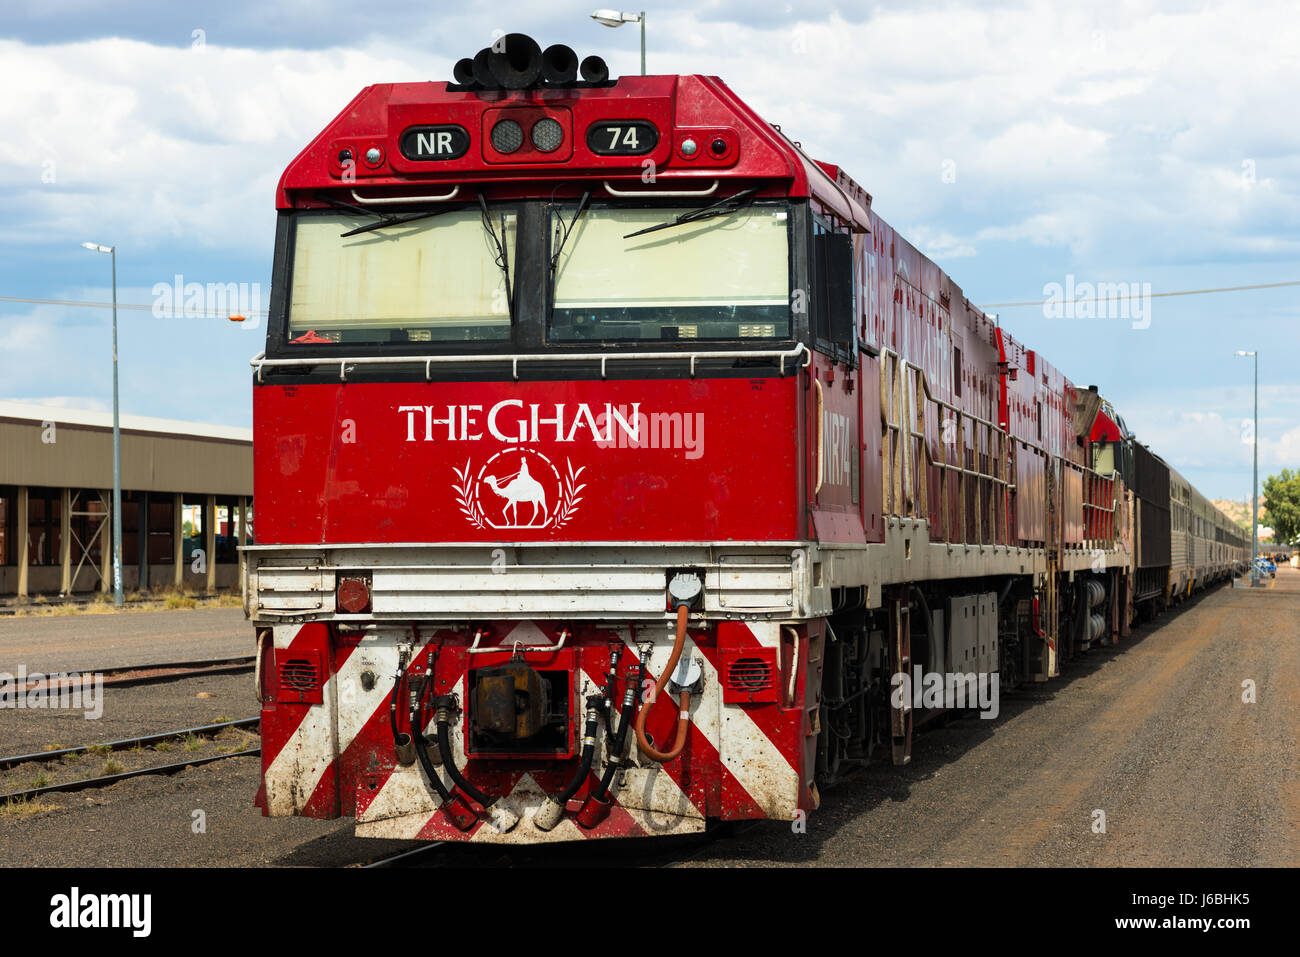 The famed Ghan train at Alice Springs railway station. Central Australia. - Stock Image